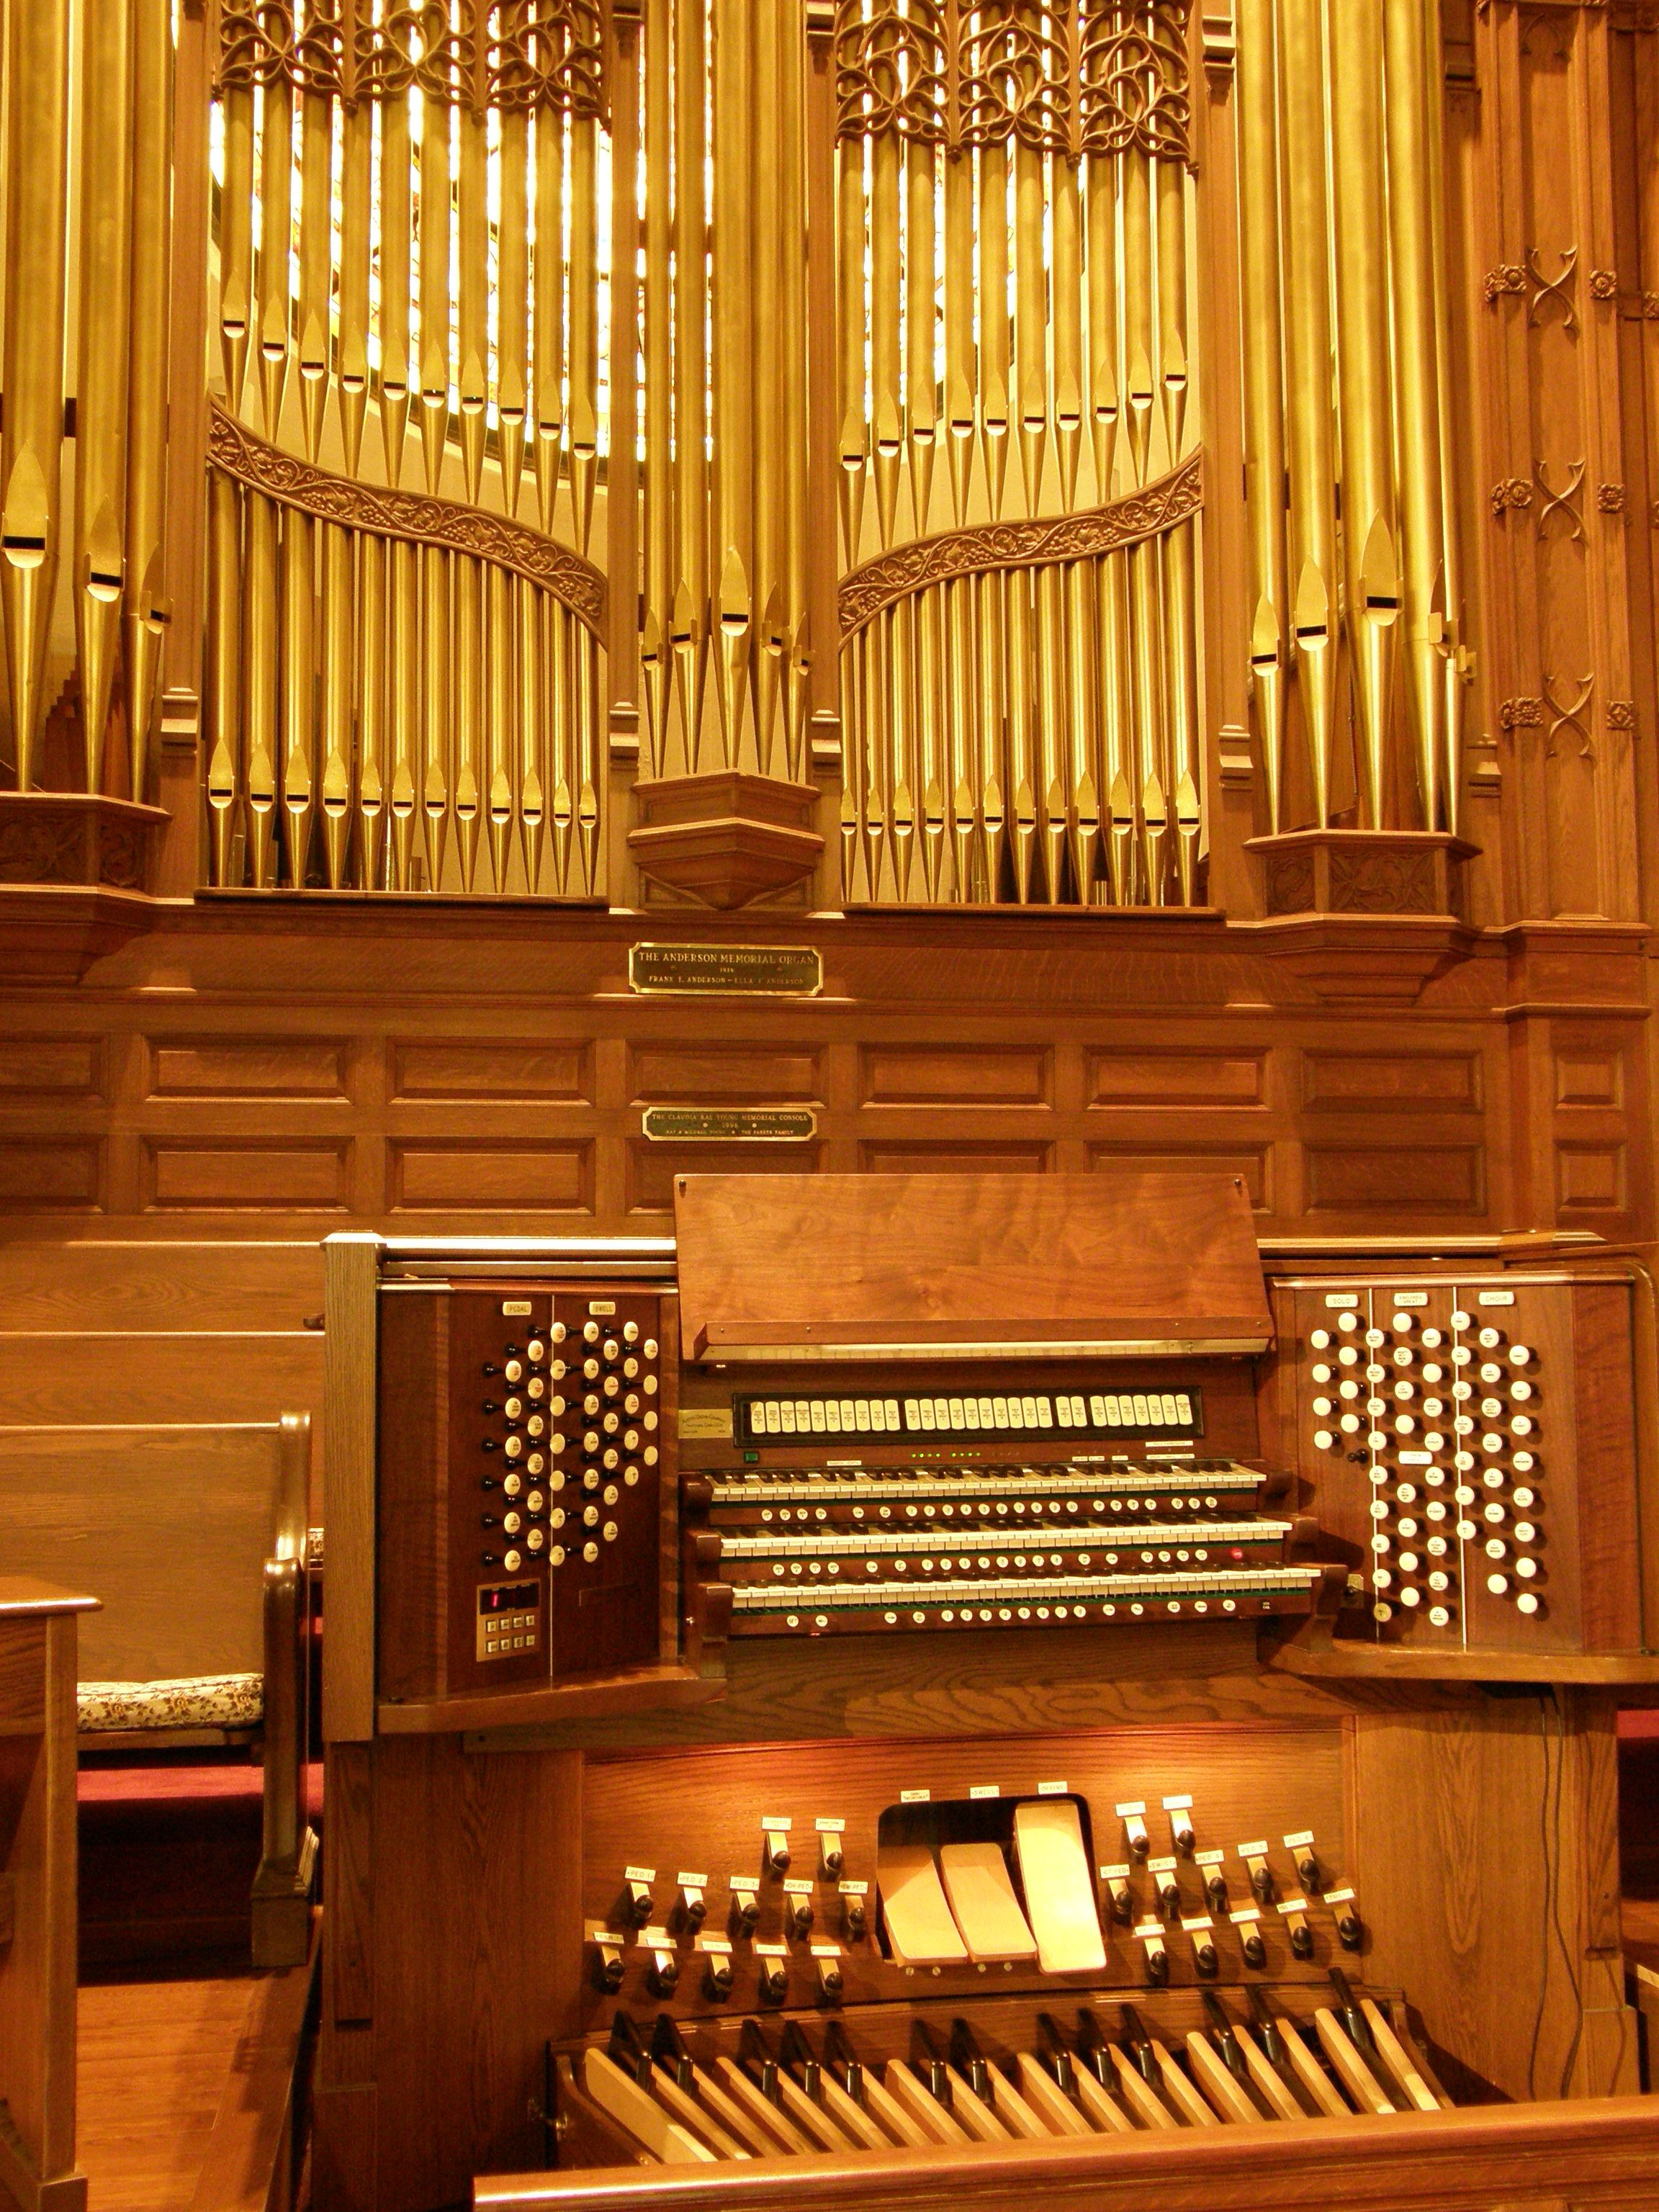 Anderson Memorial Pipe Organ